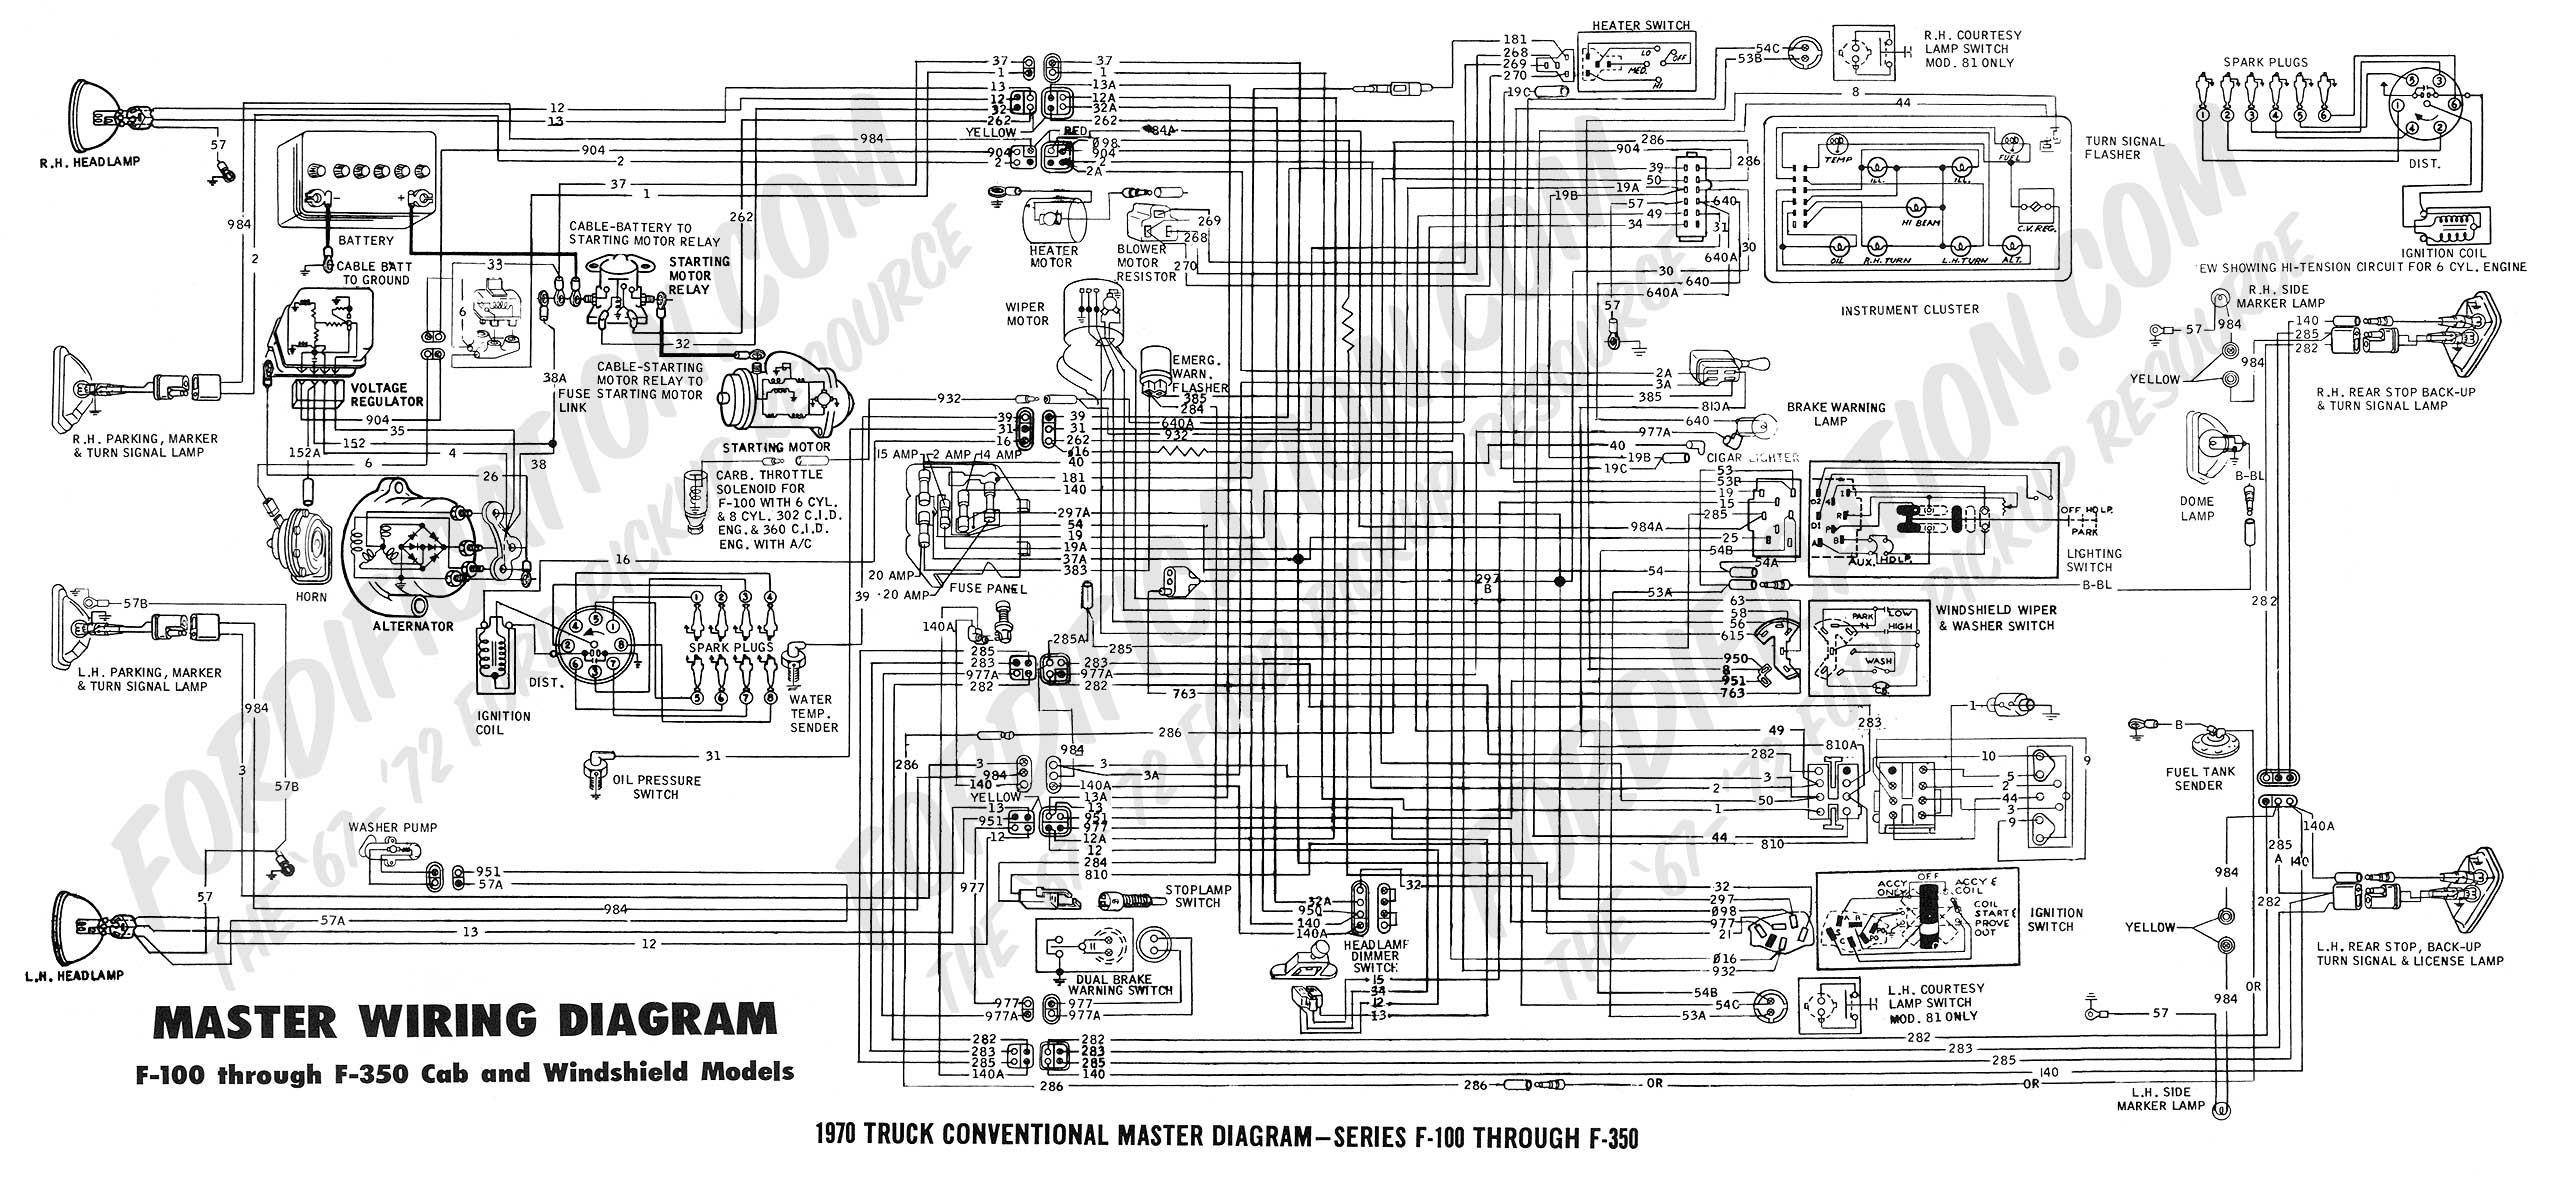 wiring diagram 70_master ford truck technical drawings and schematics section h wiring ford f250 wiring diagram at n-0.co